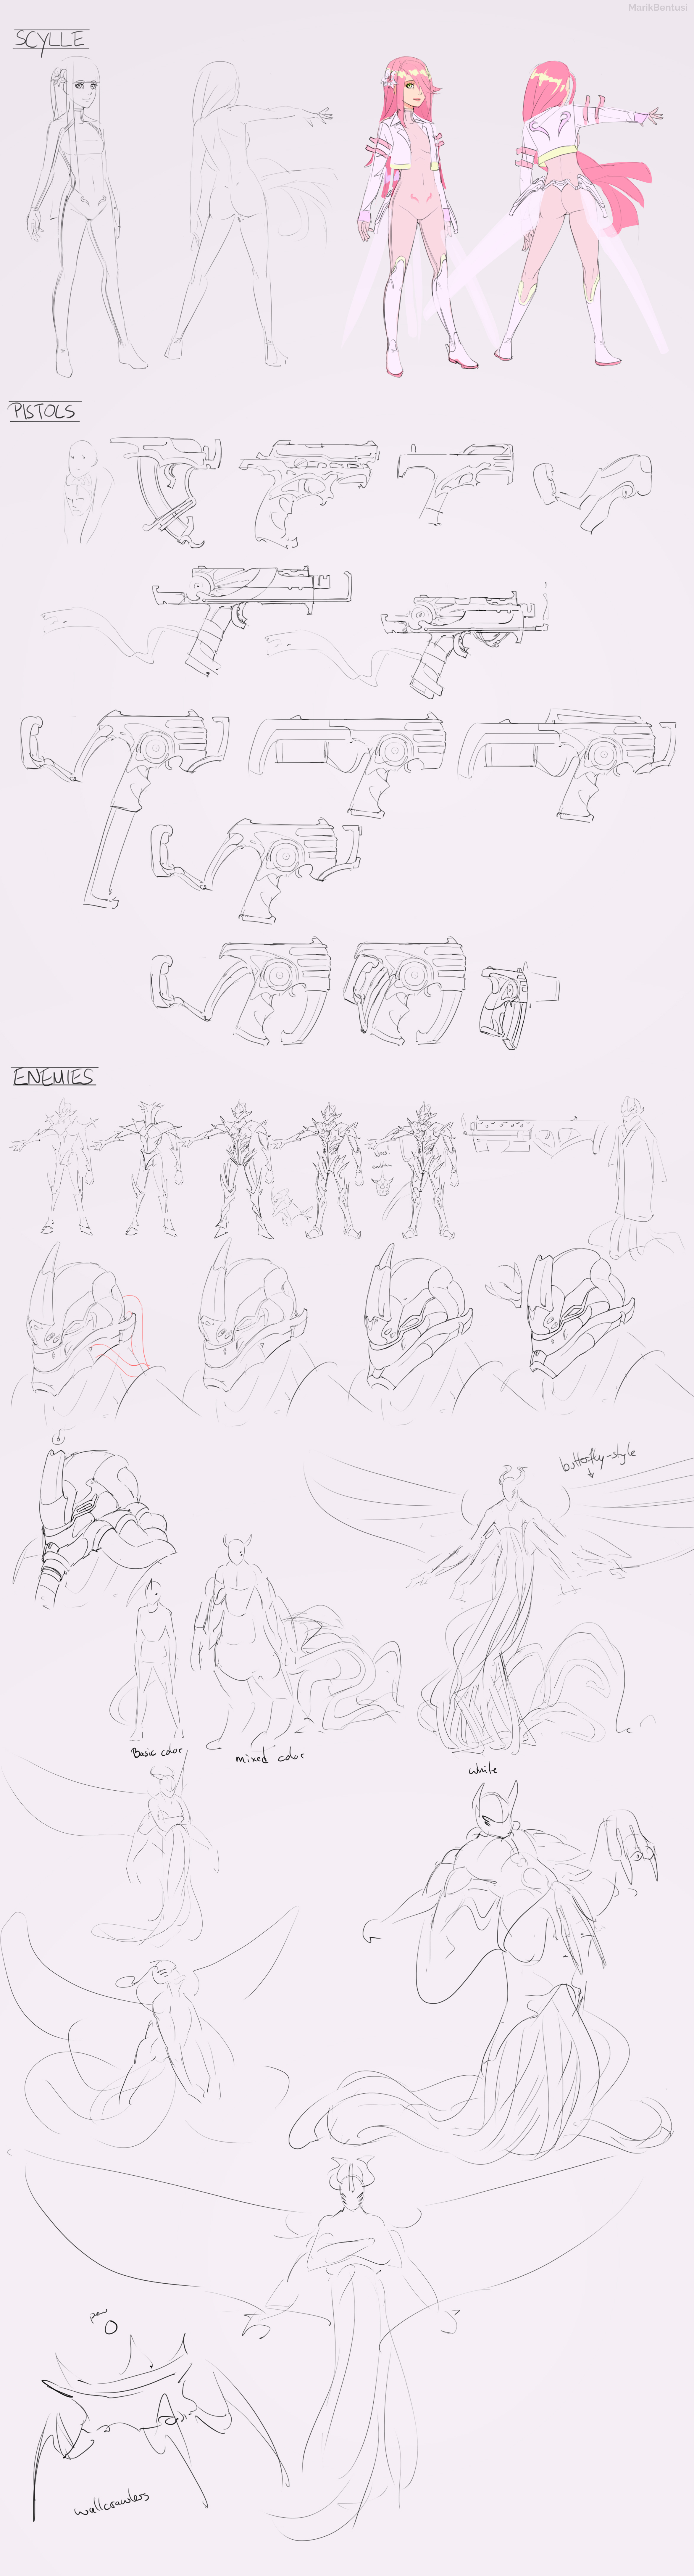 Light Weight - making of sketches